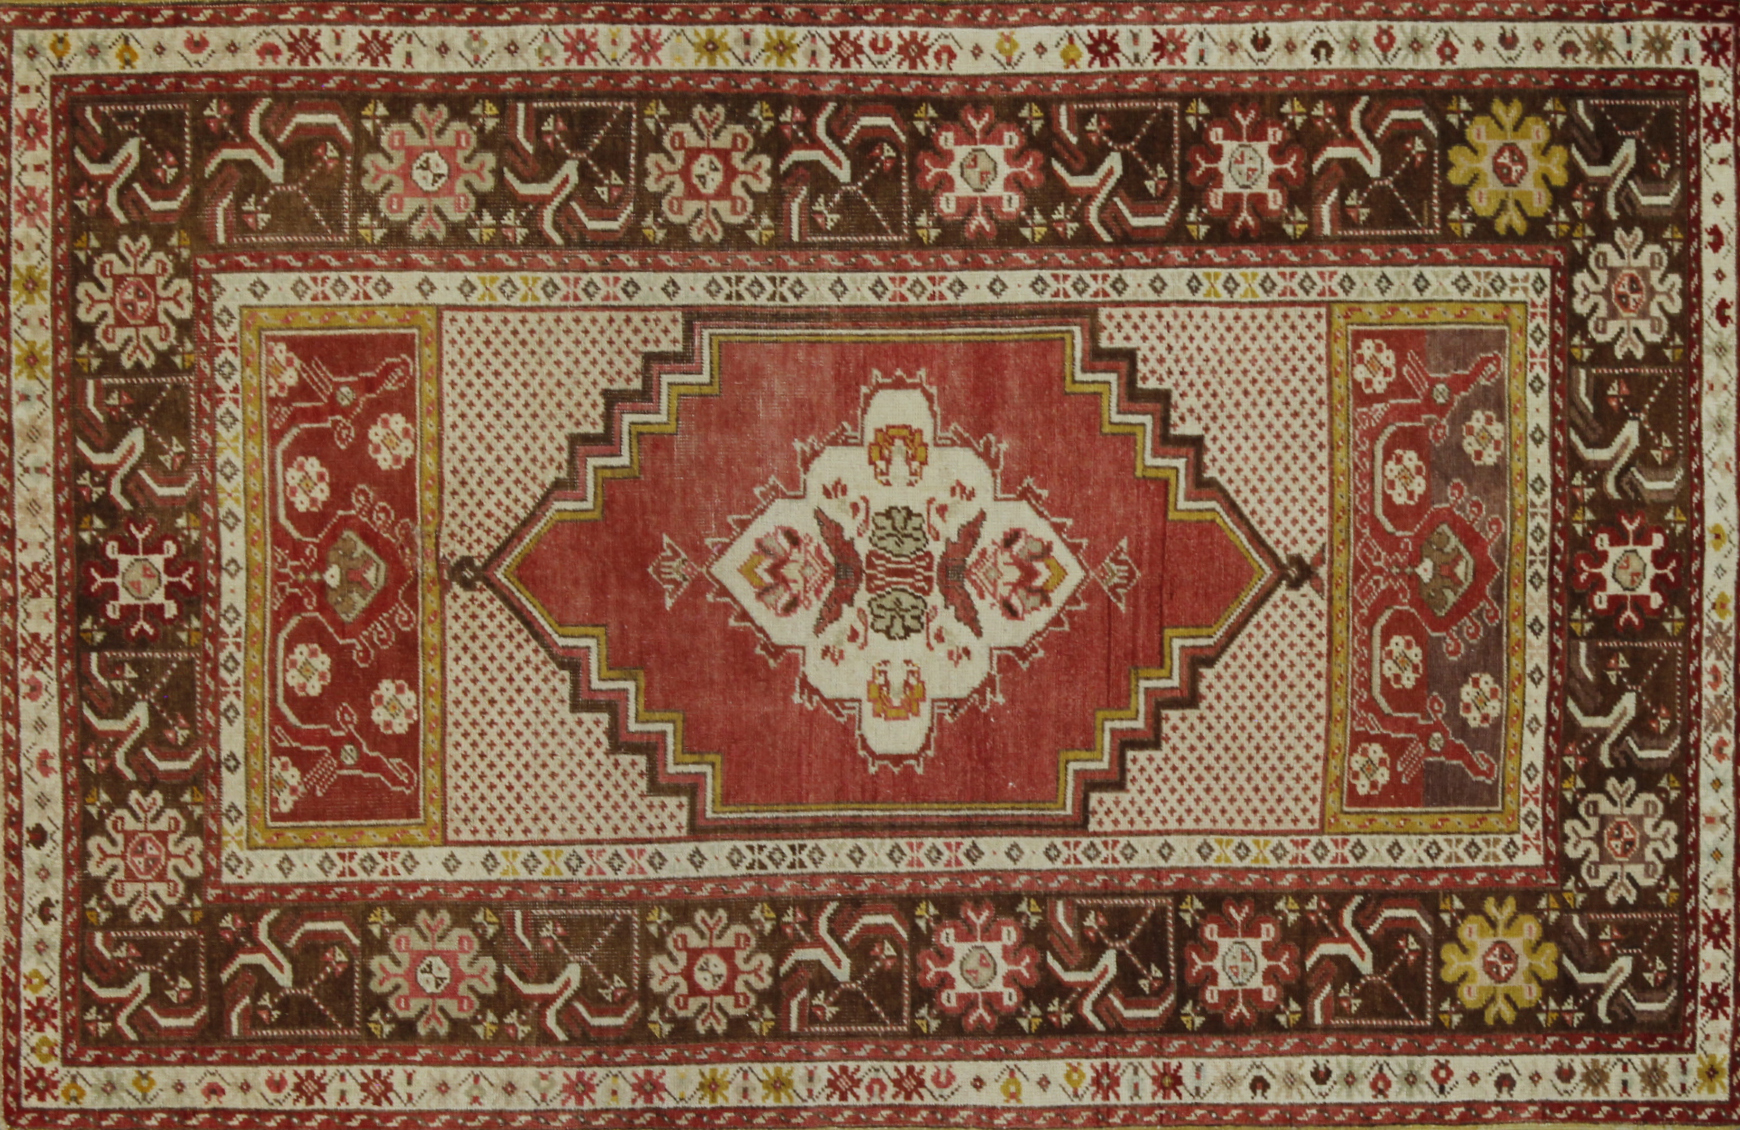 4x6 Tribal Hand Knotted Wool Area Rug - MR022610